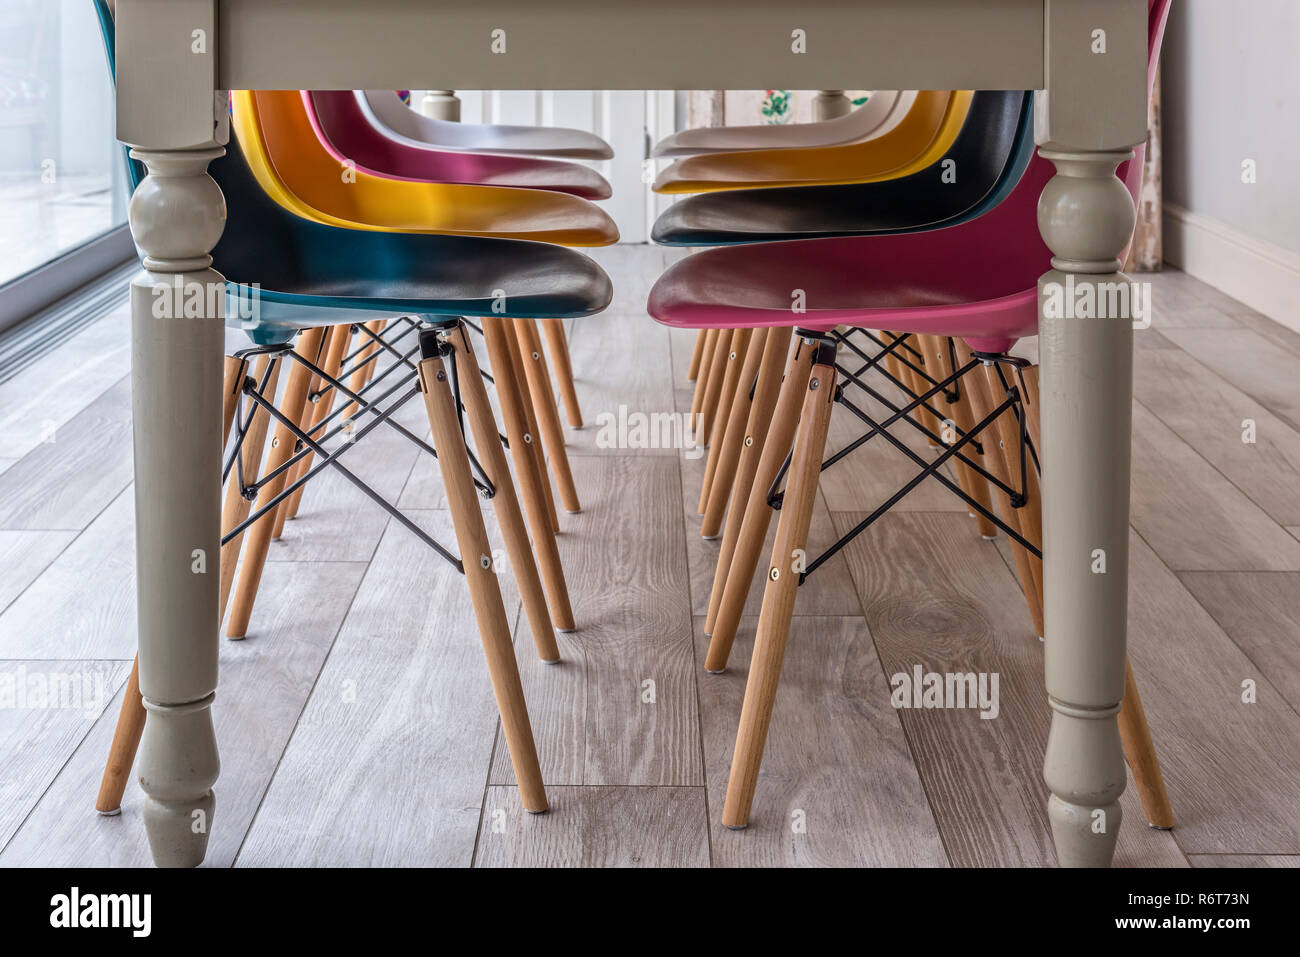 Multicoloured Eames-style chairs and table legs - Stock Image